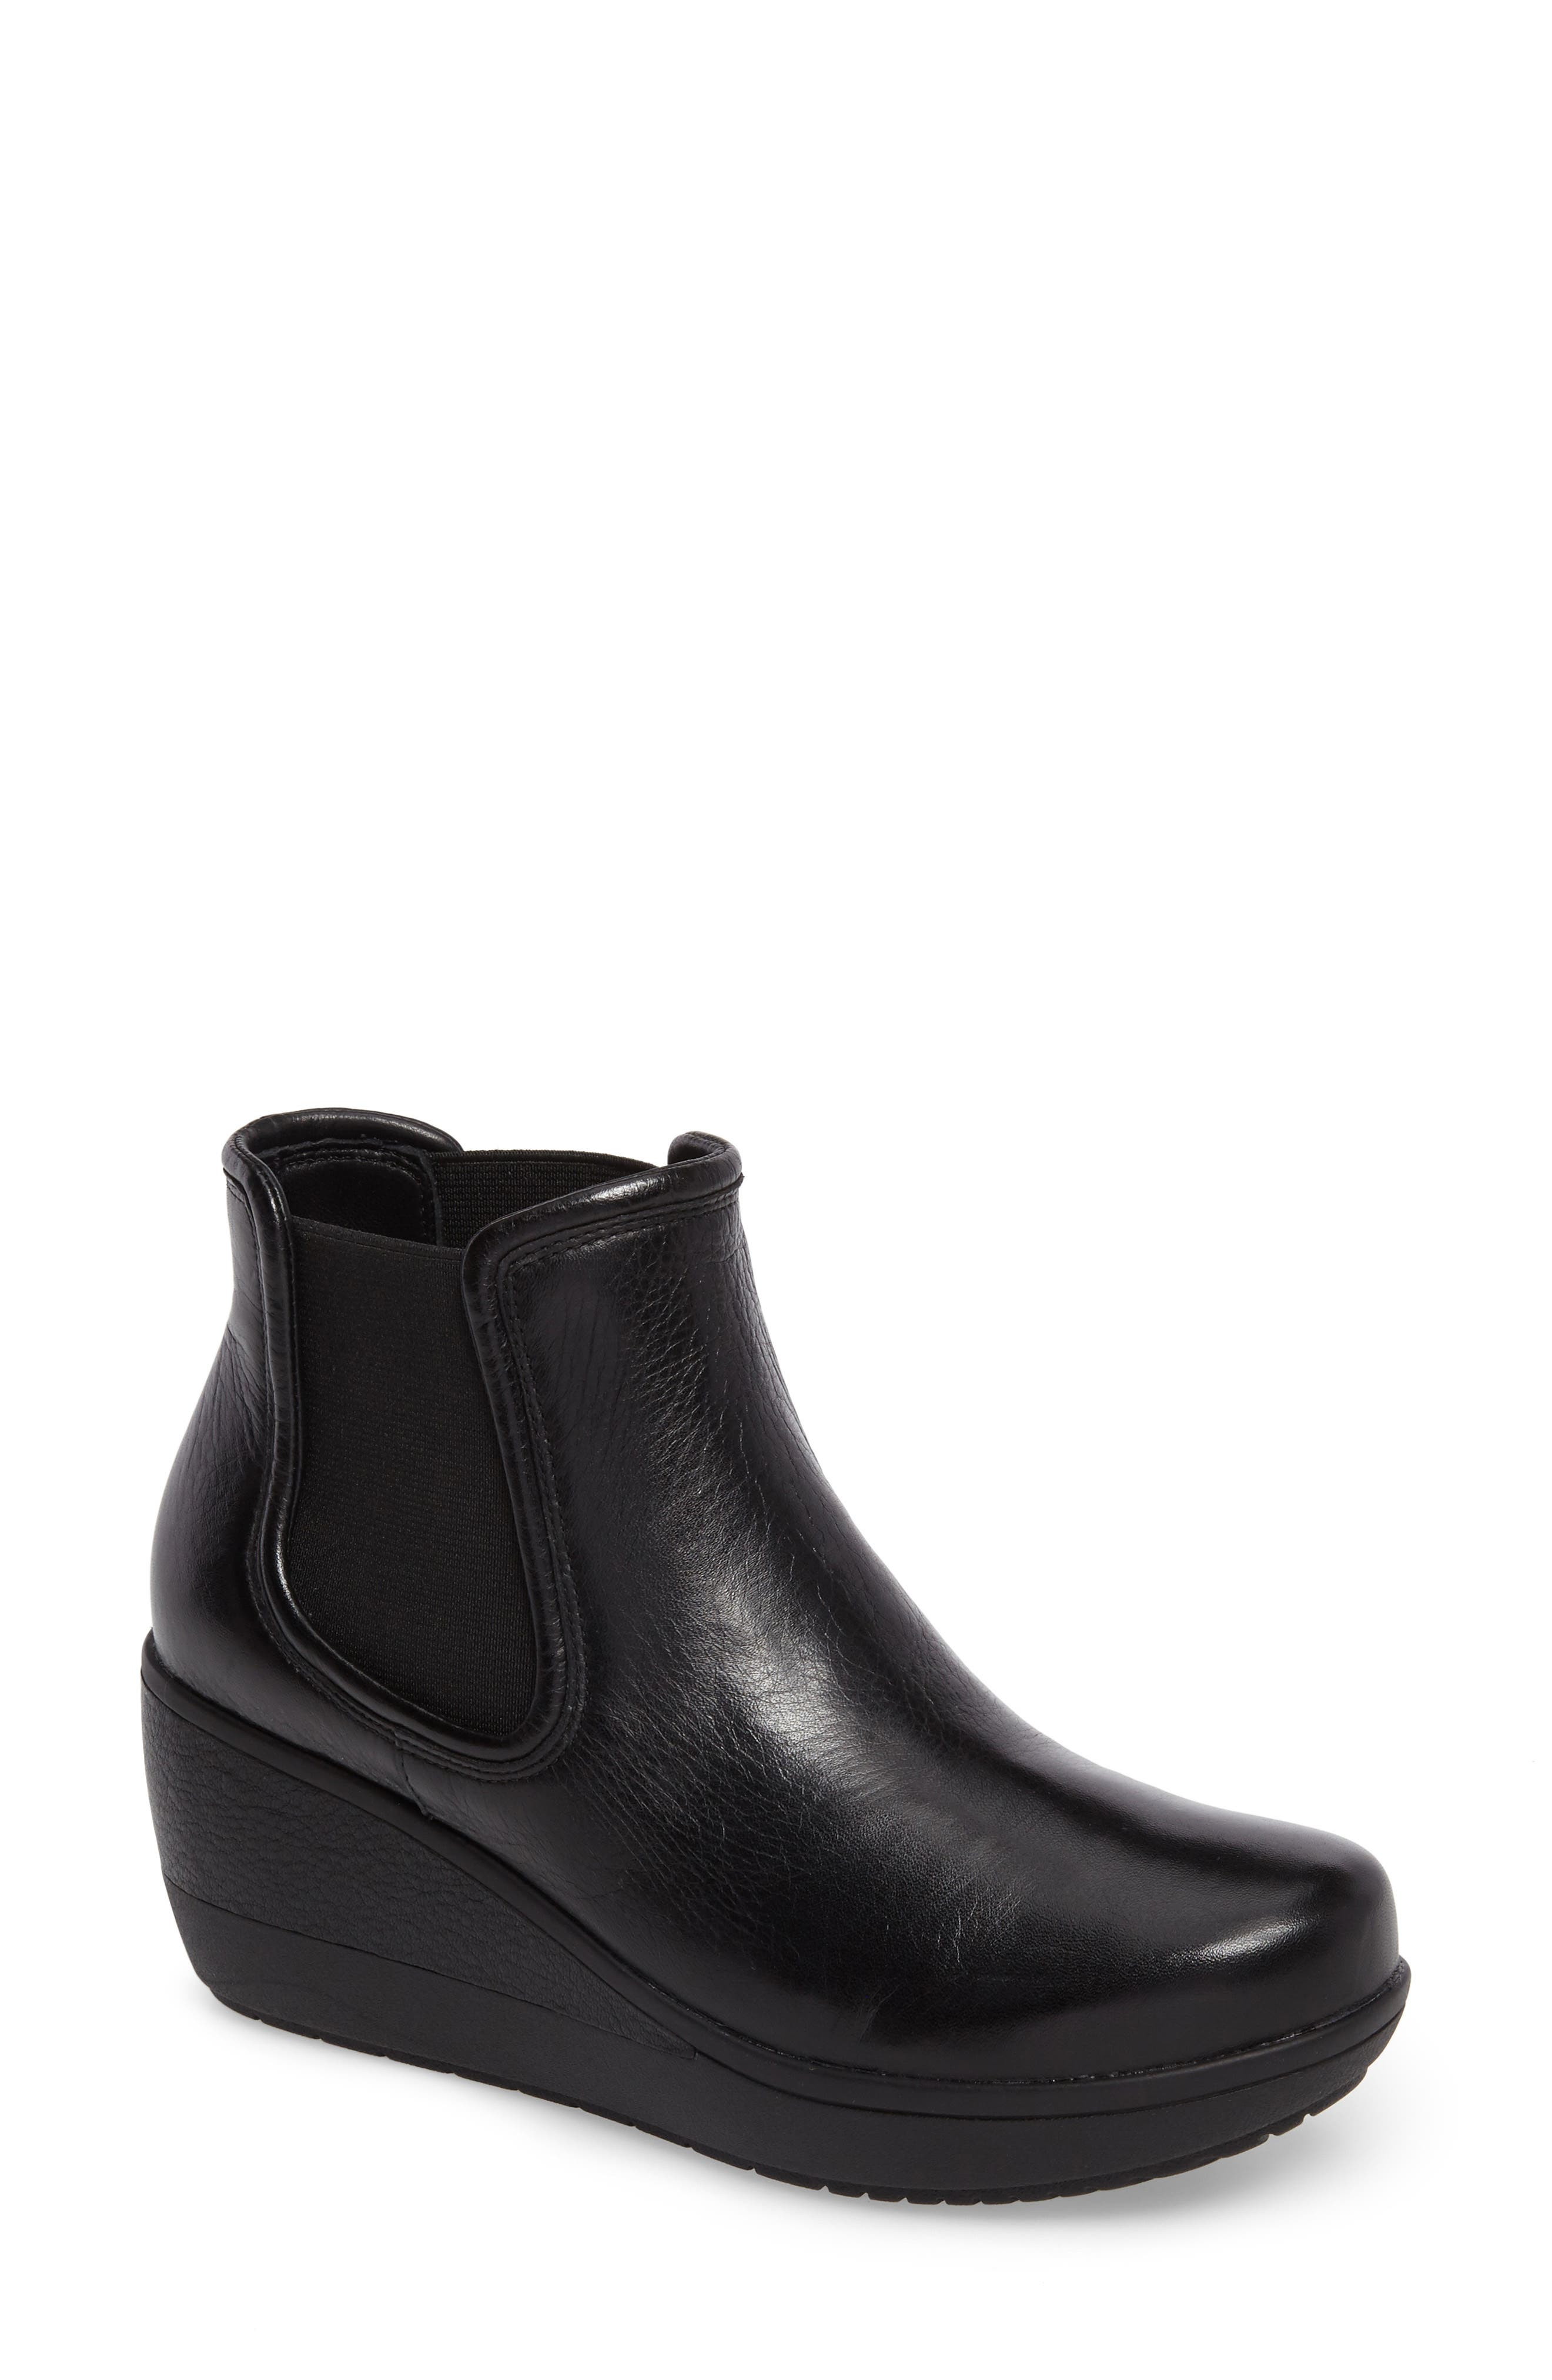 Wynnmere Mara Boot,                         Main,                         color, Black Leather